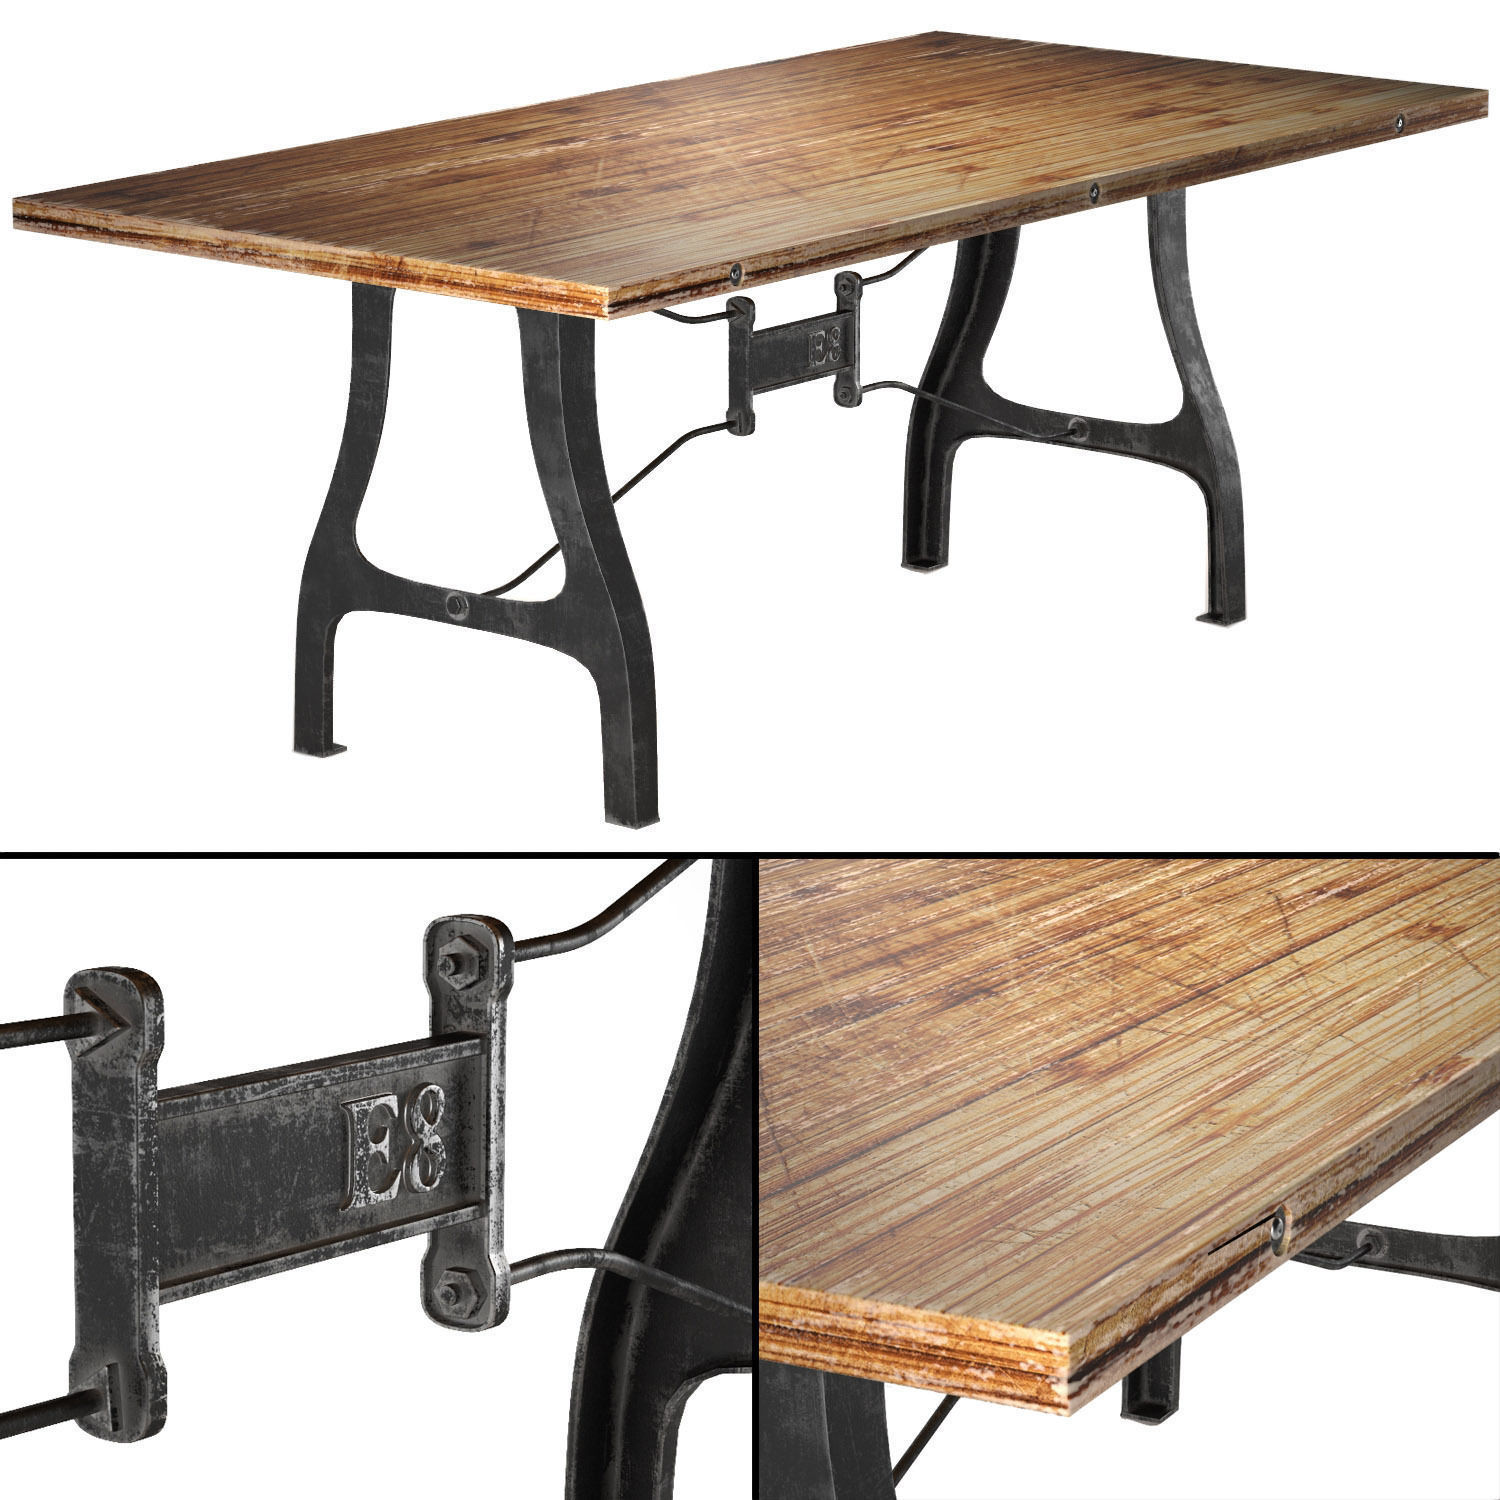 Nuevo v4 a leg small dining table with rec 3d model for New model wooden dining table